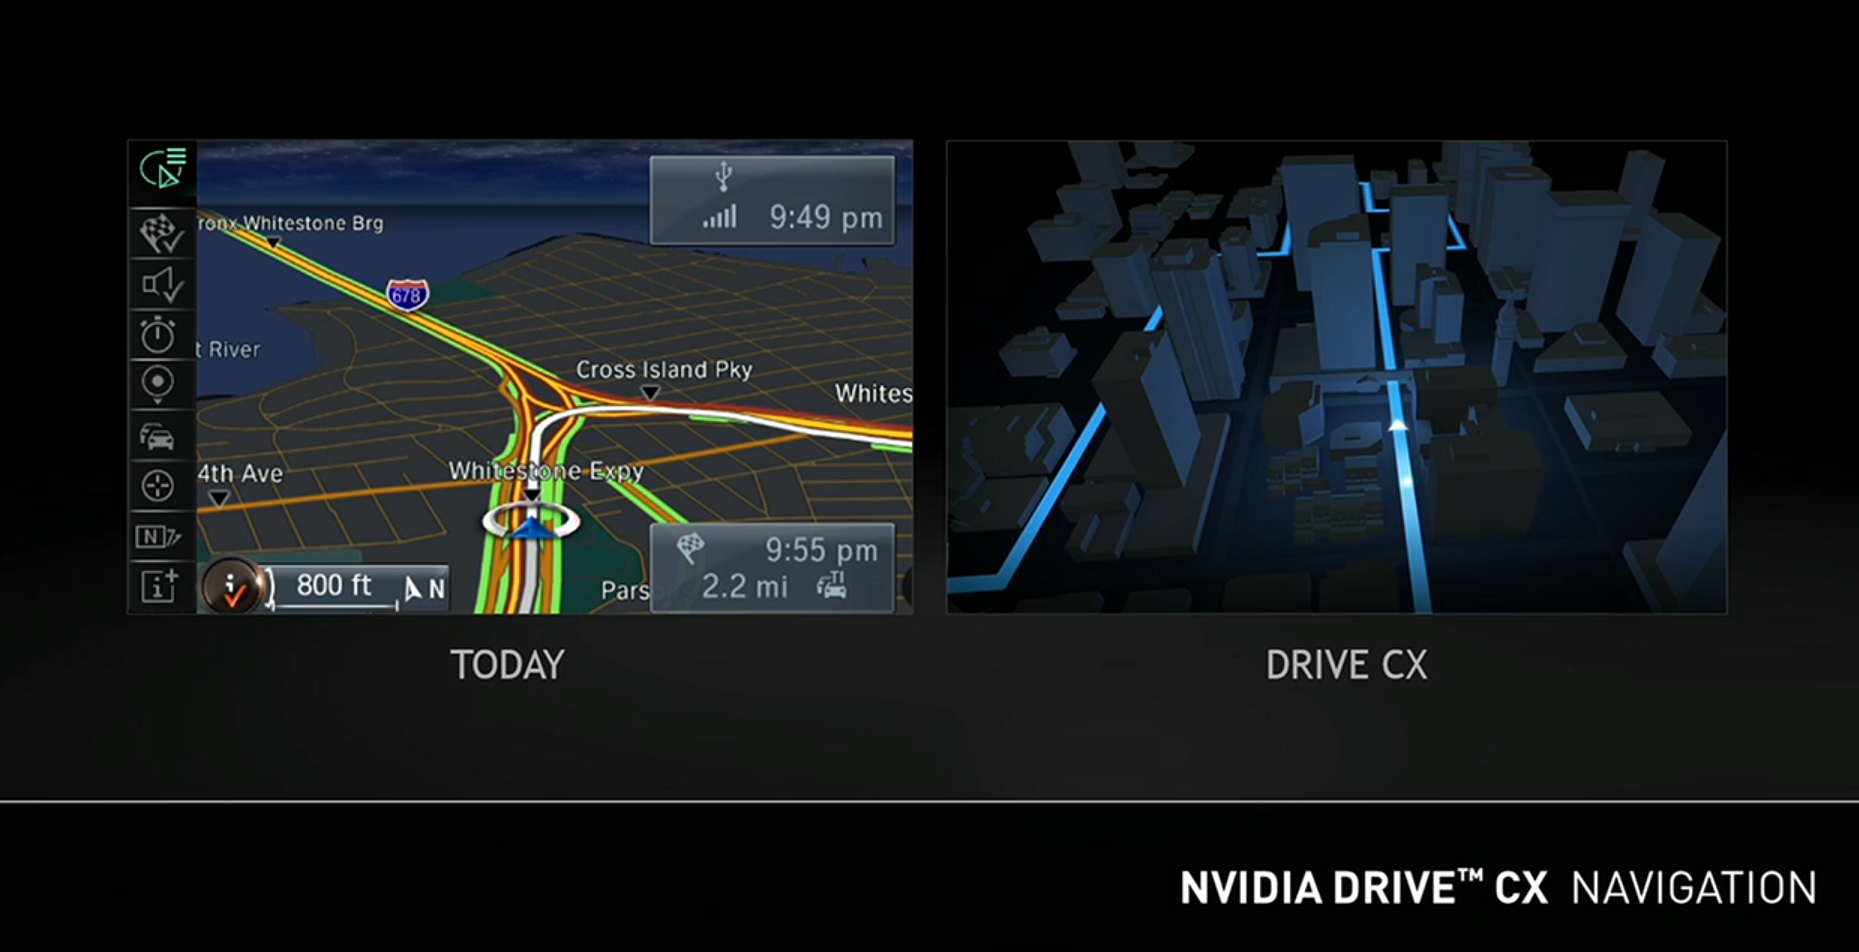 NVIDIA Drive CX is an all-new digital cockpit for your vehicle